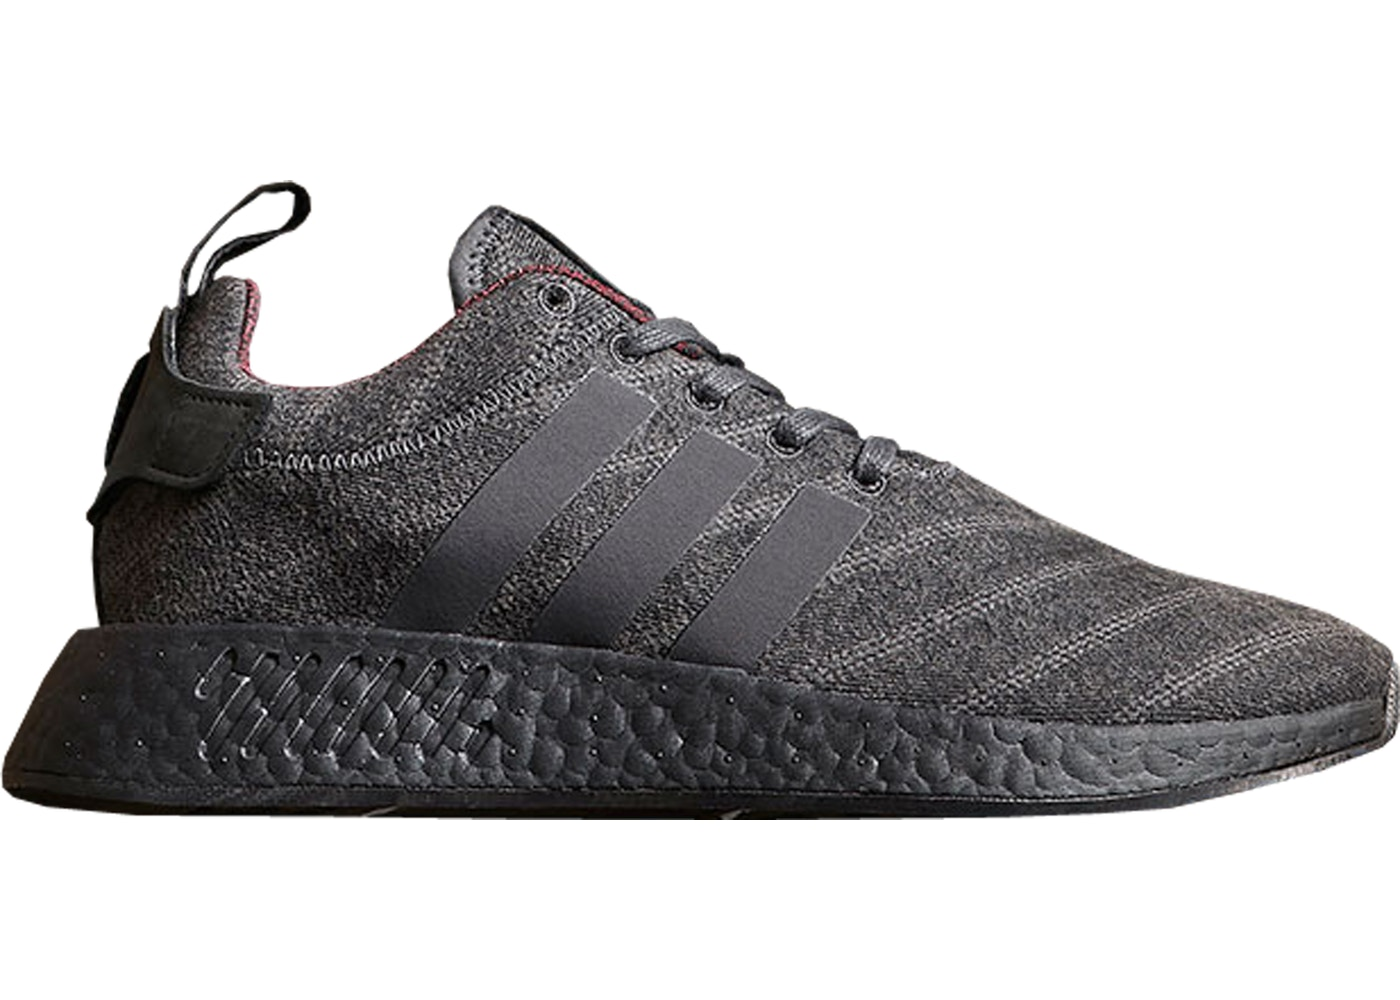 f424d80fe3393 adidas NMD R2 Size  Henry Poole - CQ2015